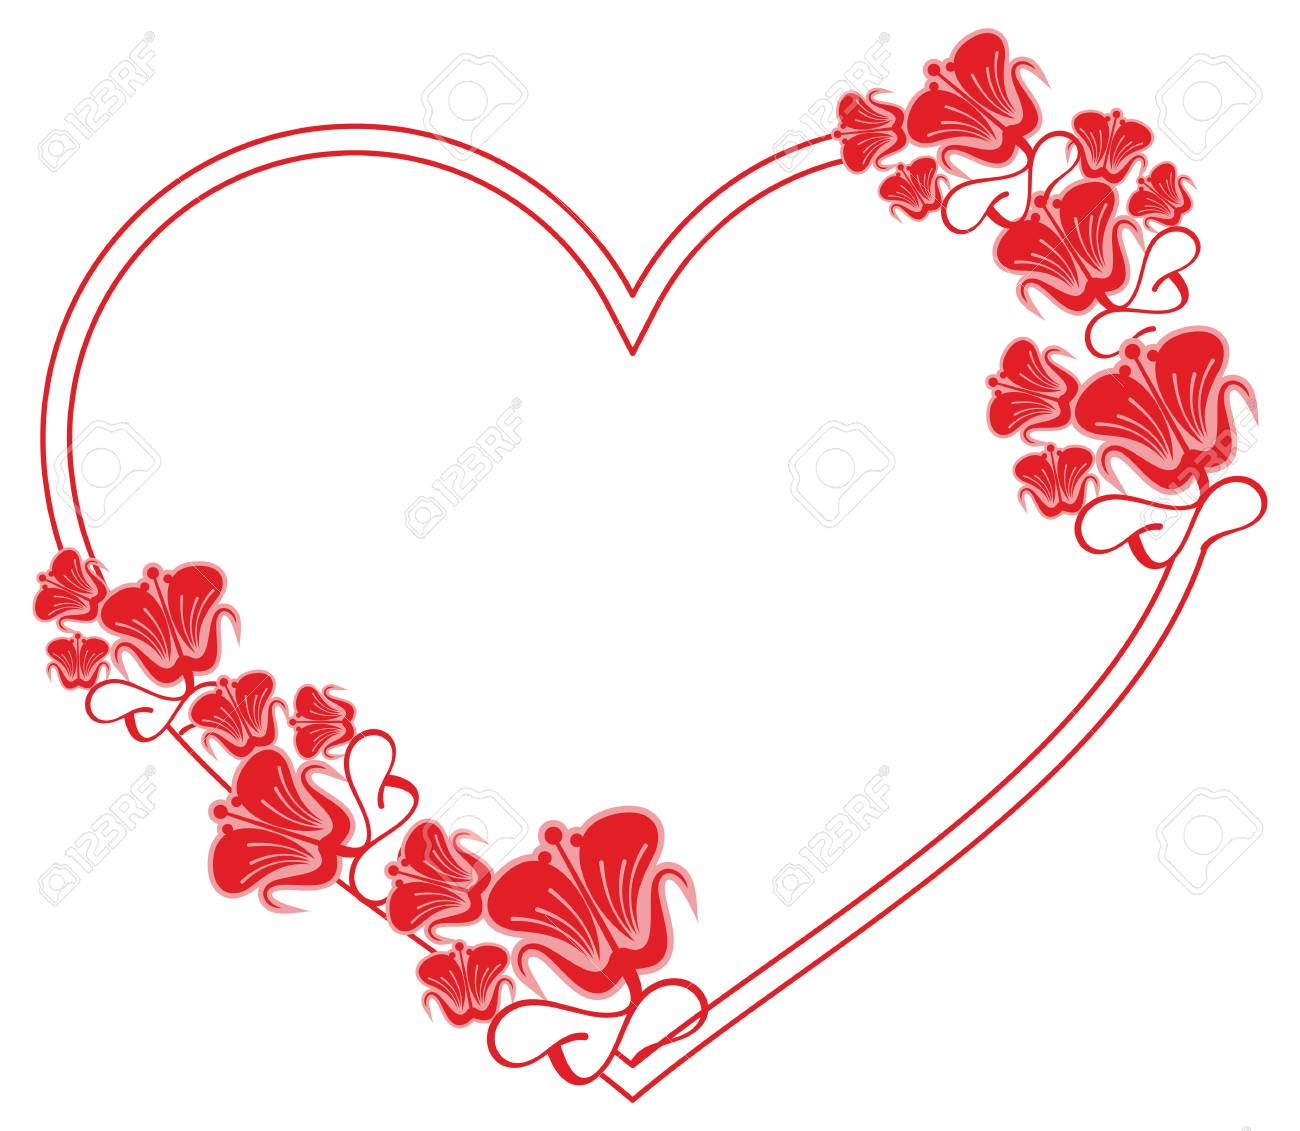 Heart-shaped Frame With Decorative Flowers. Design Element For ...